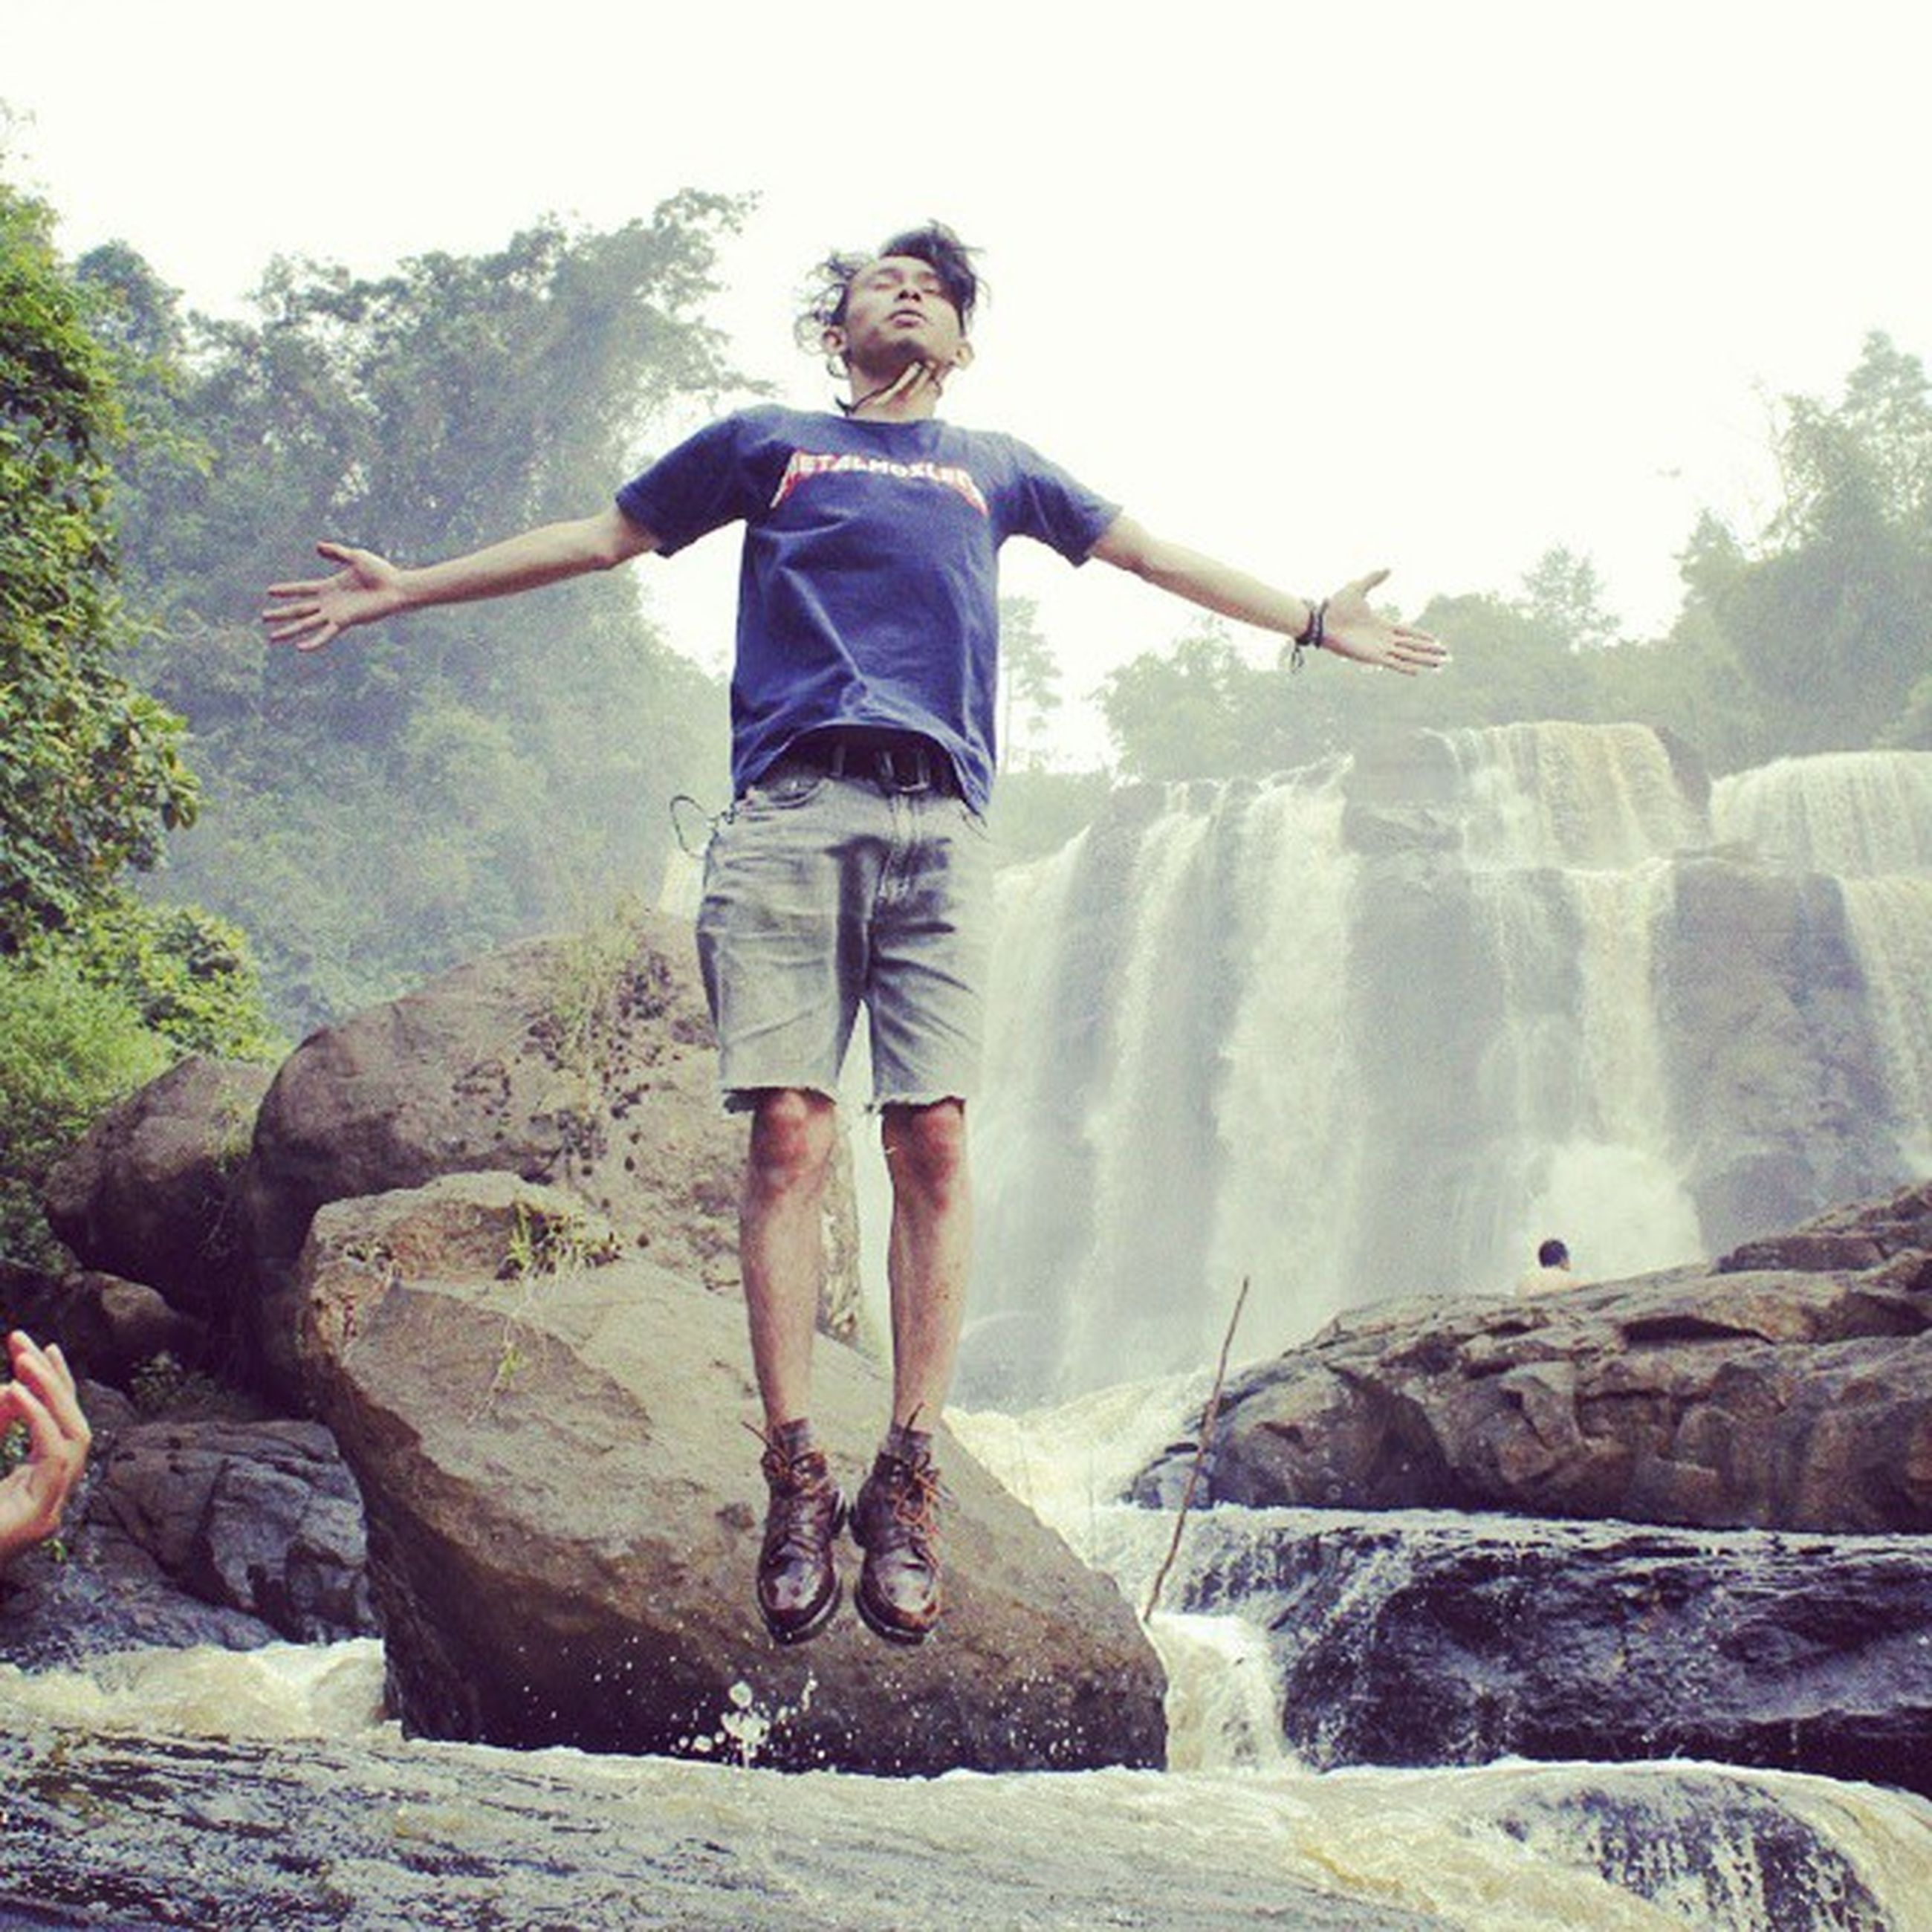 lifestyles, leisure activity, full length, young adult, casual clothing, person, young men, standing, arms outstretched, front view, portrait, vacations, looking at camera, water, low angle view, rock - object, happiness